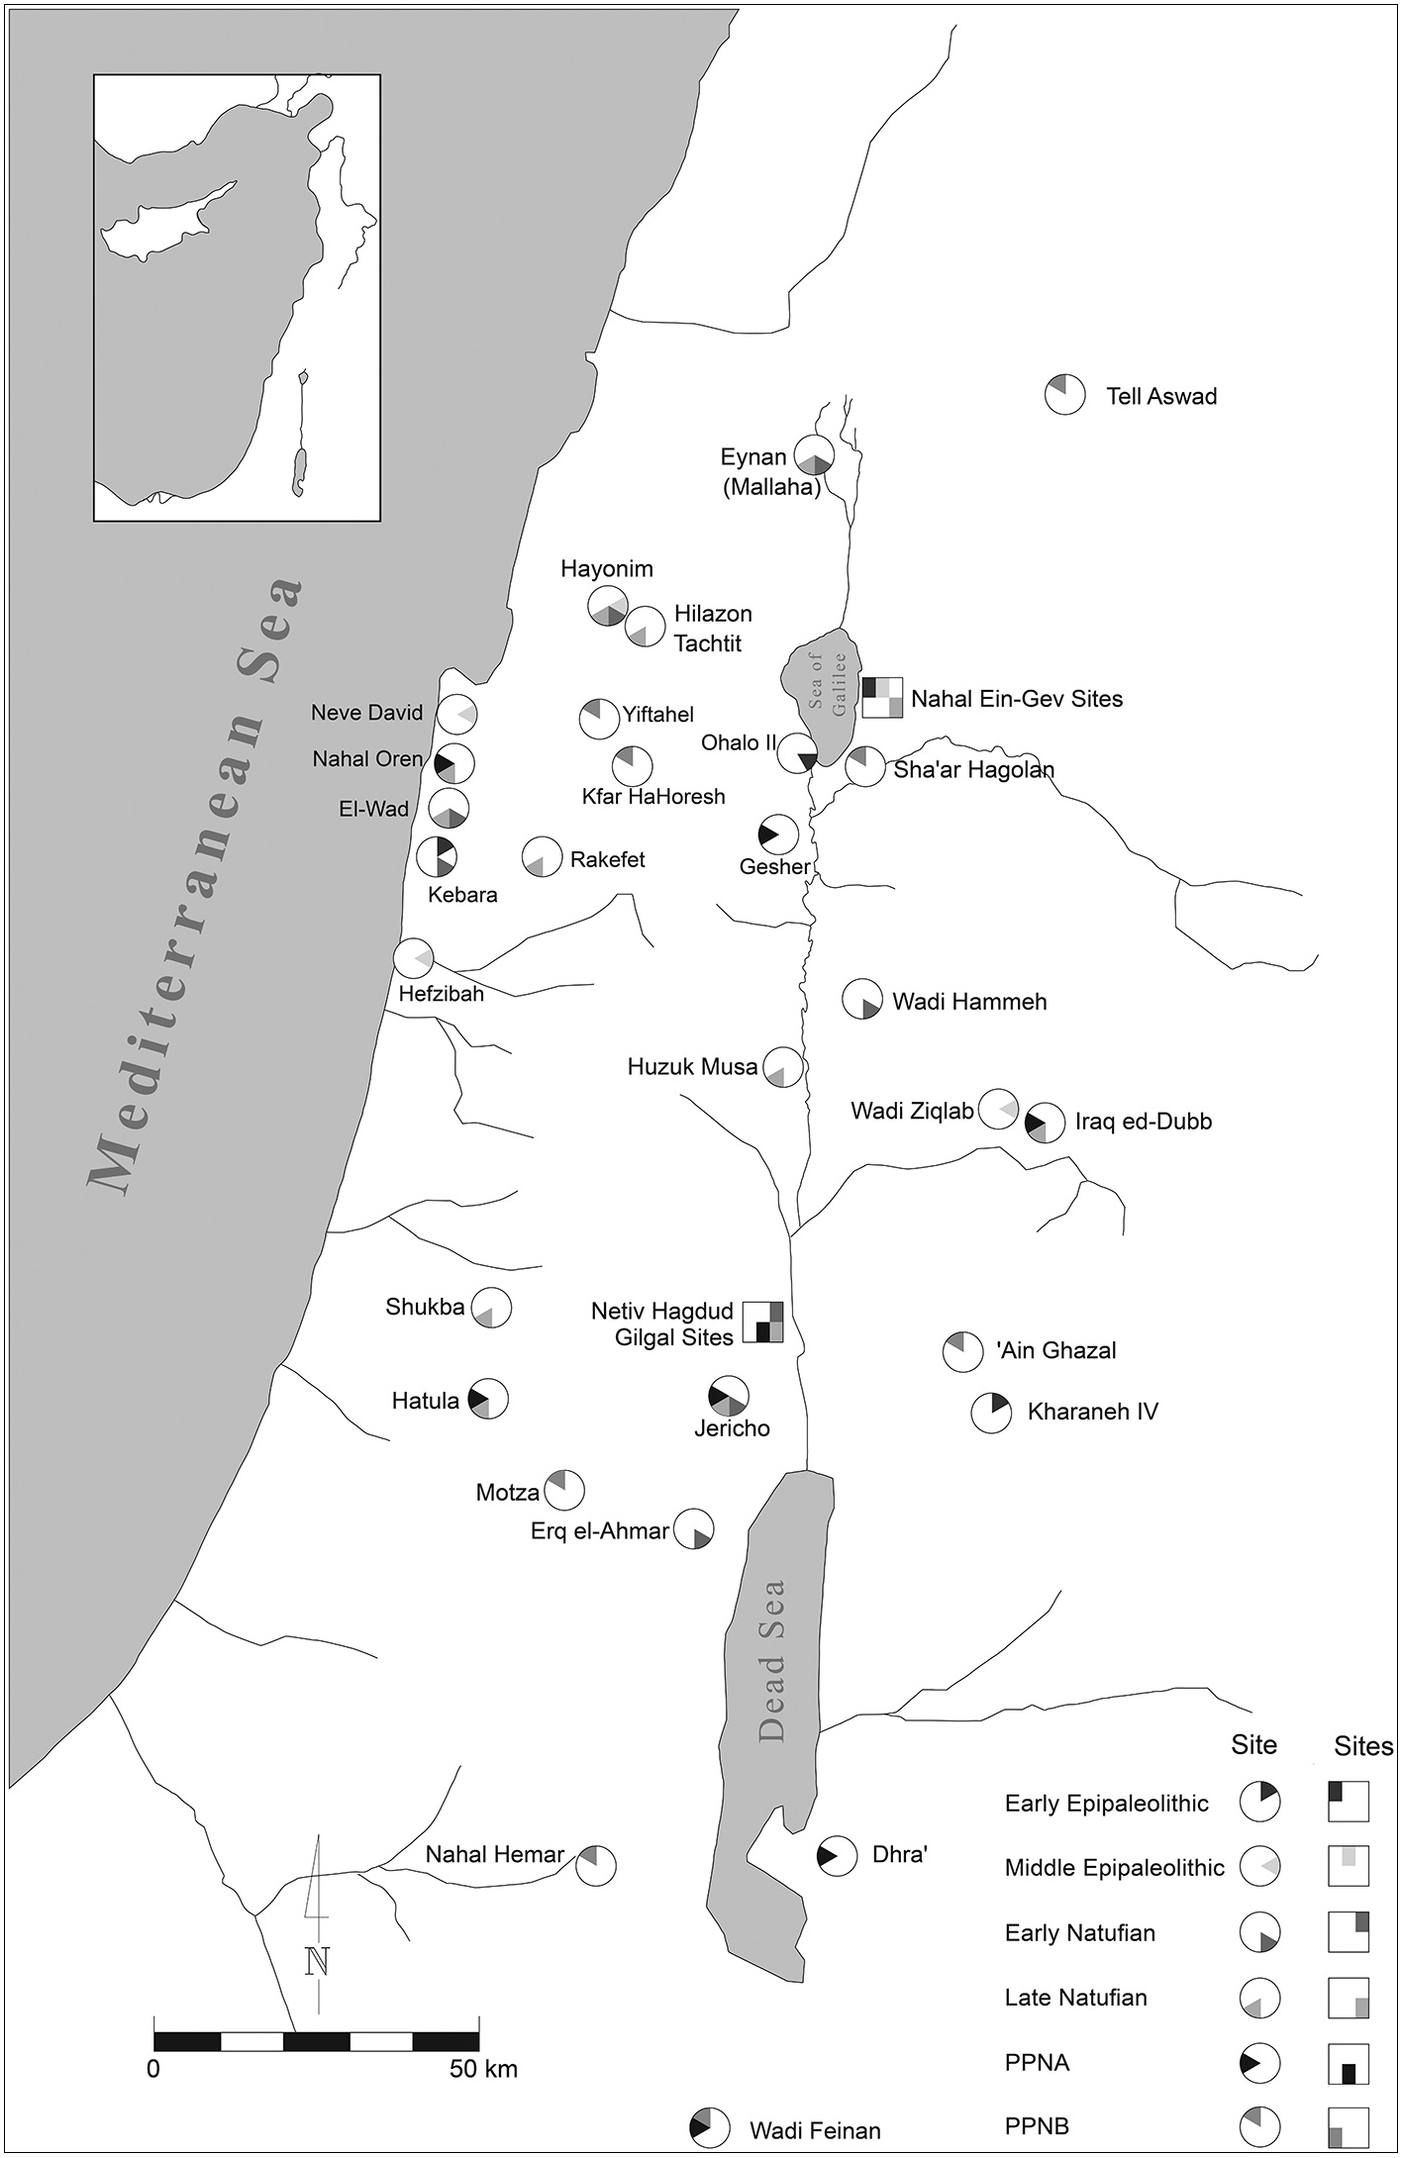 Part One - The Social Archaeology of the Levant